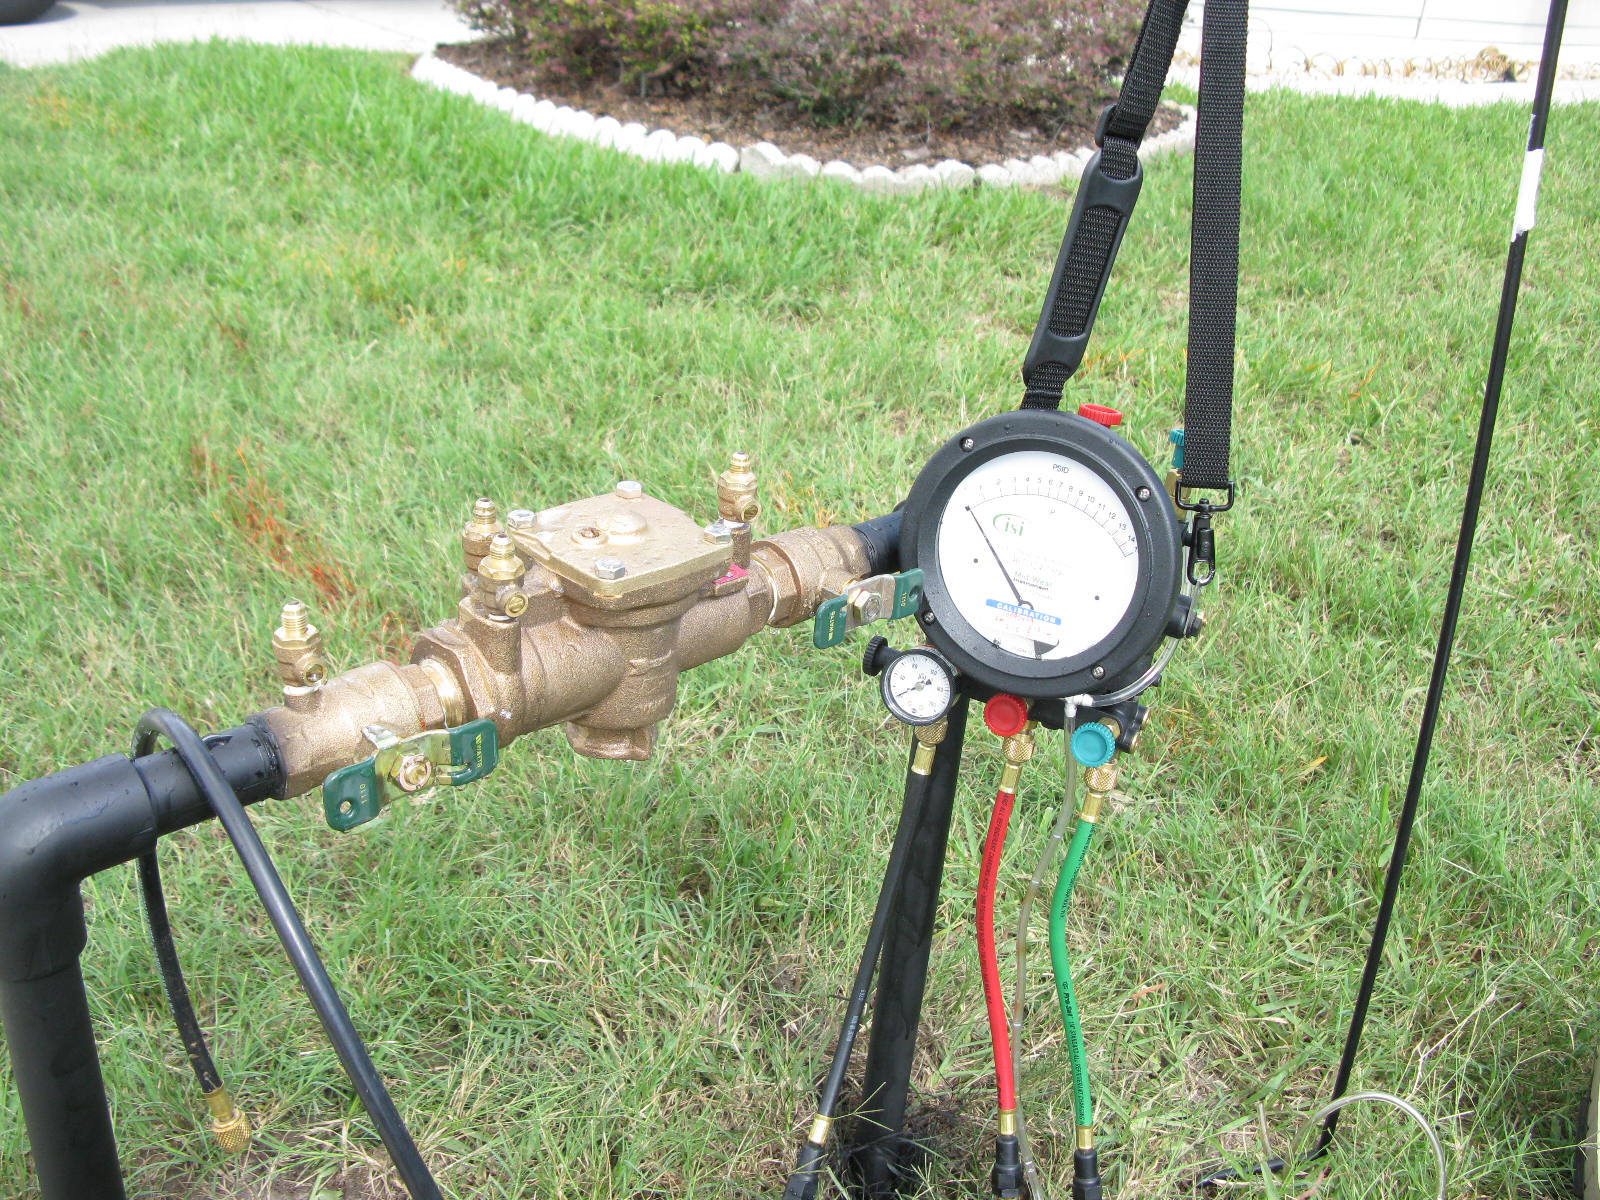 certified backflow test certified backflow testing for irrigation systems - Irrigation Systems